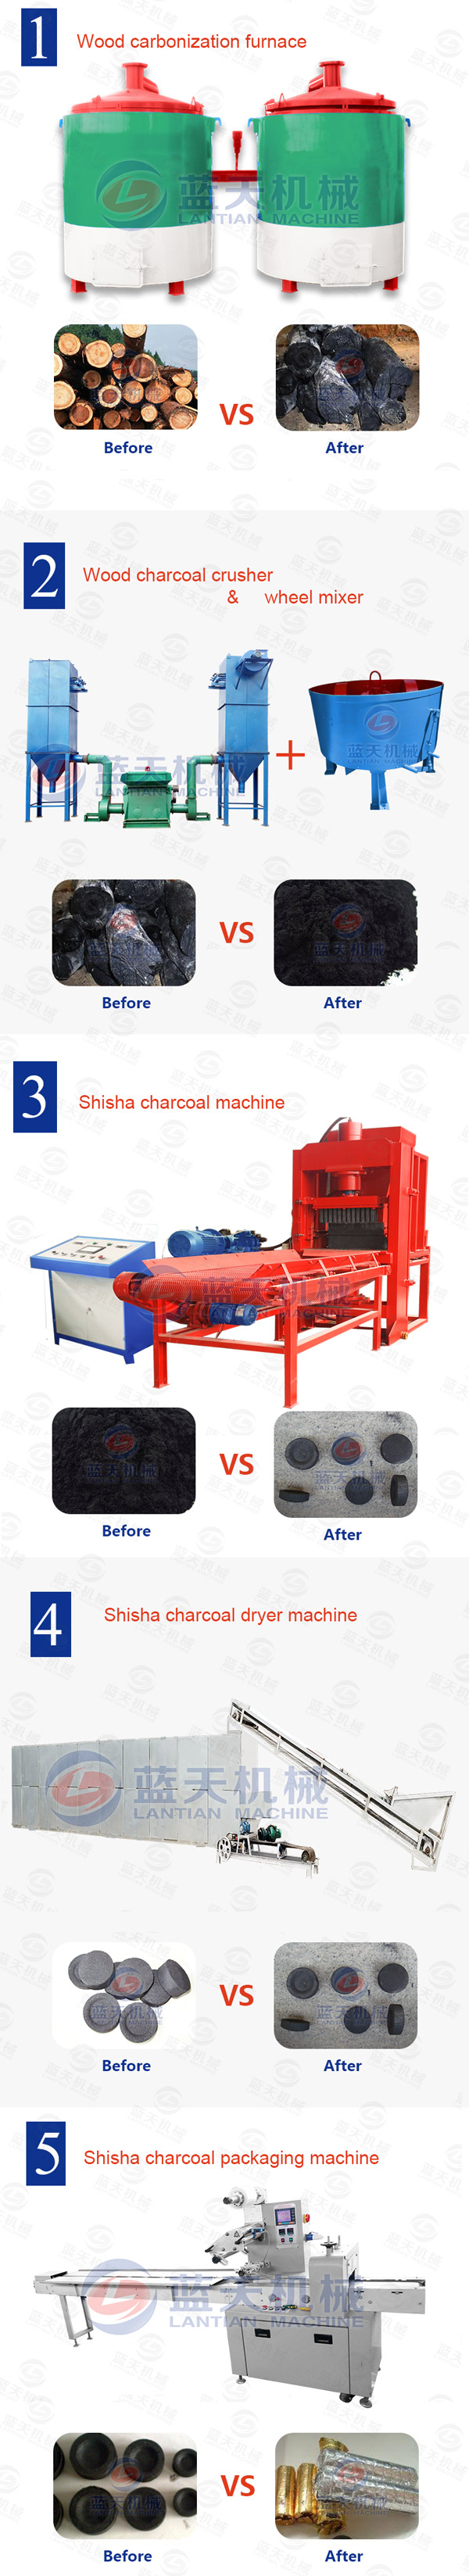 shisha charcoal making machine production line